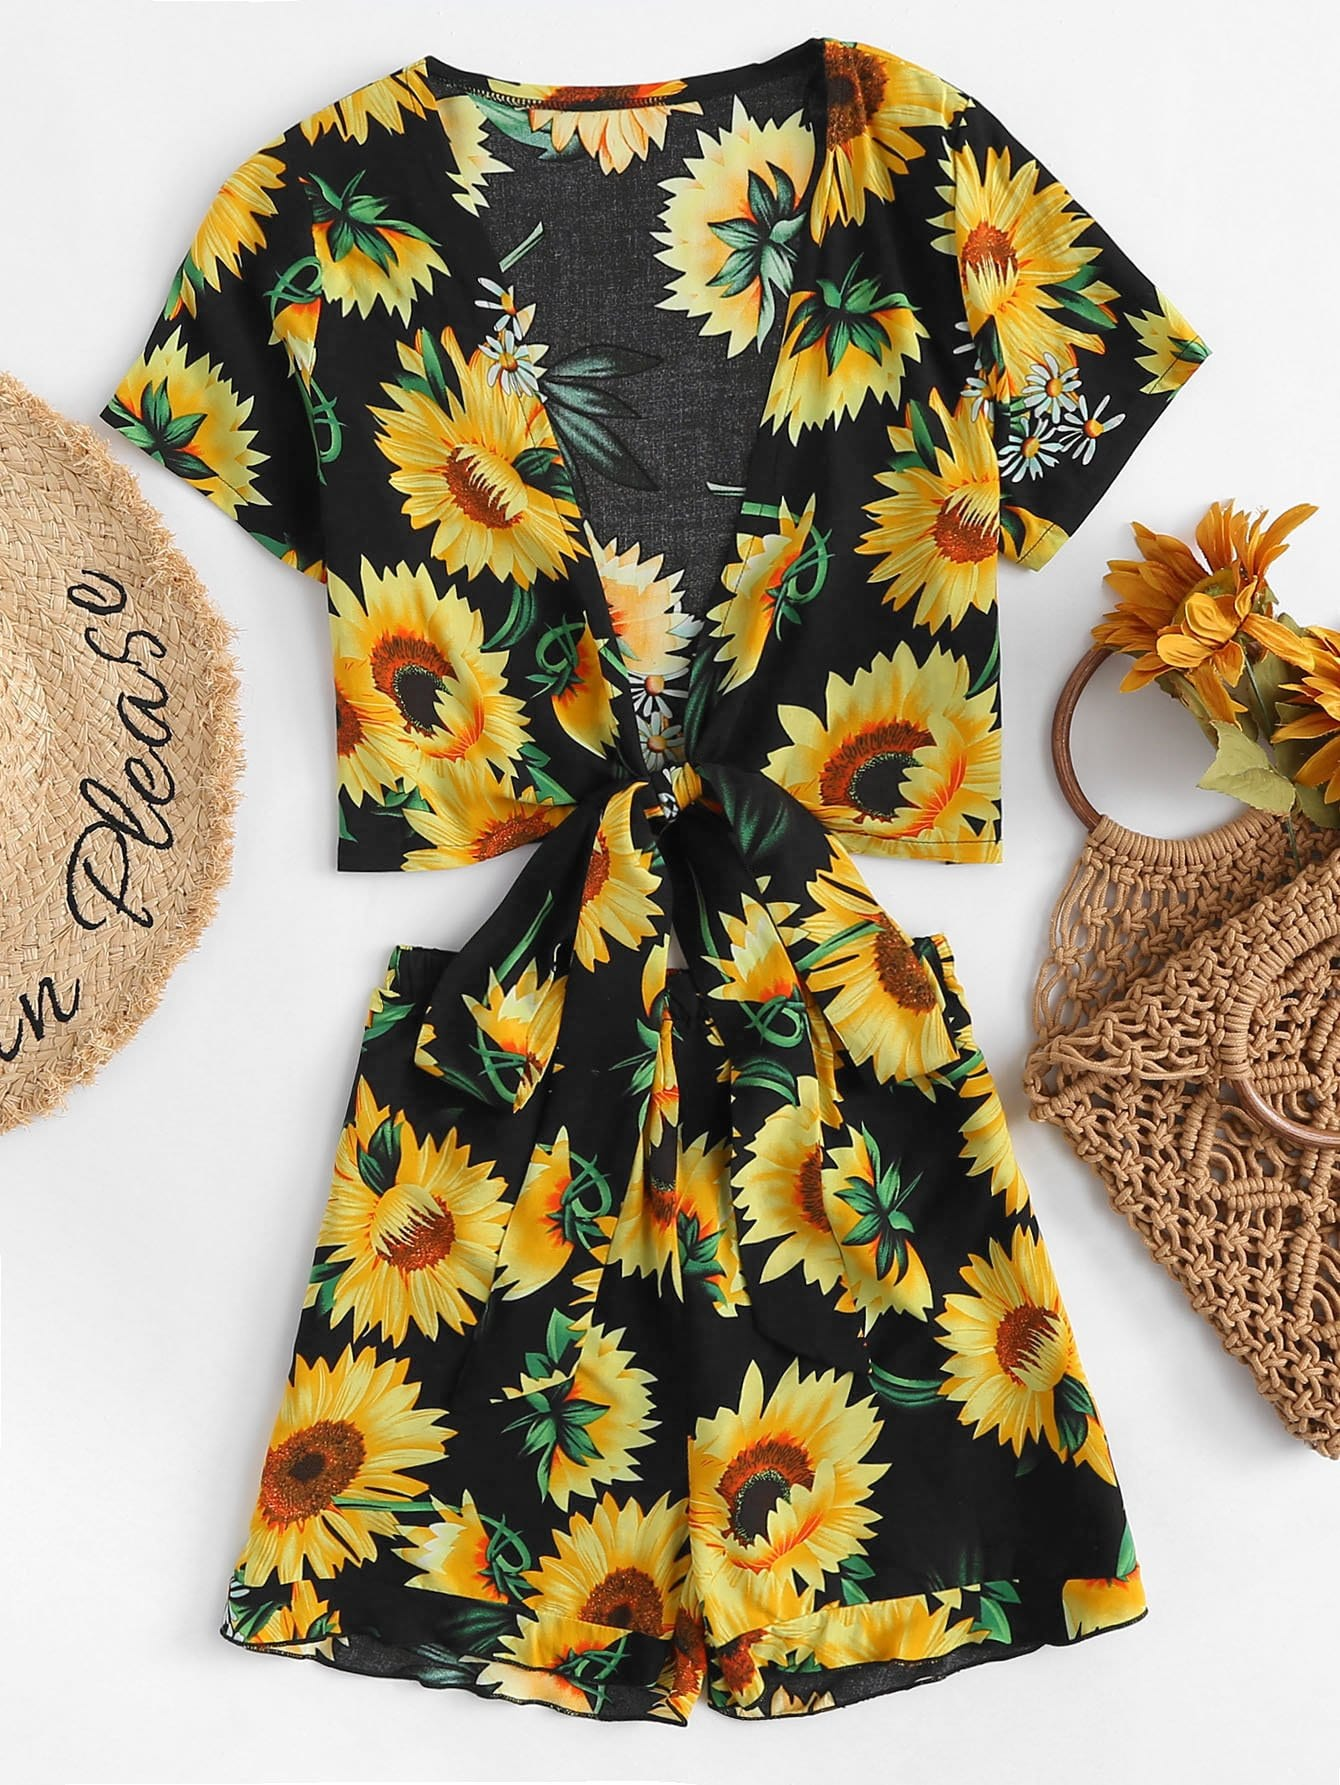 Sunflower Print Knot Front Top With Shorts letter print knot front top